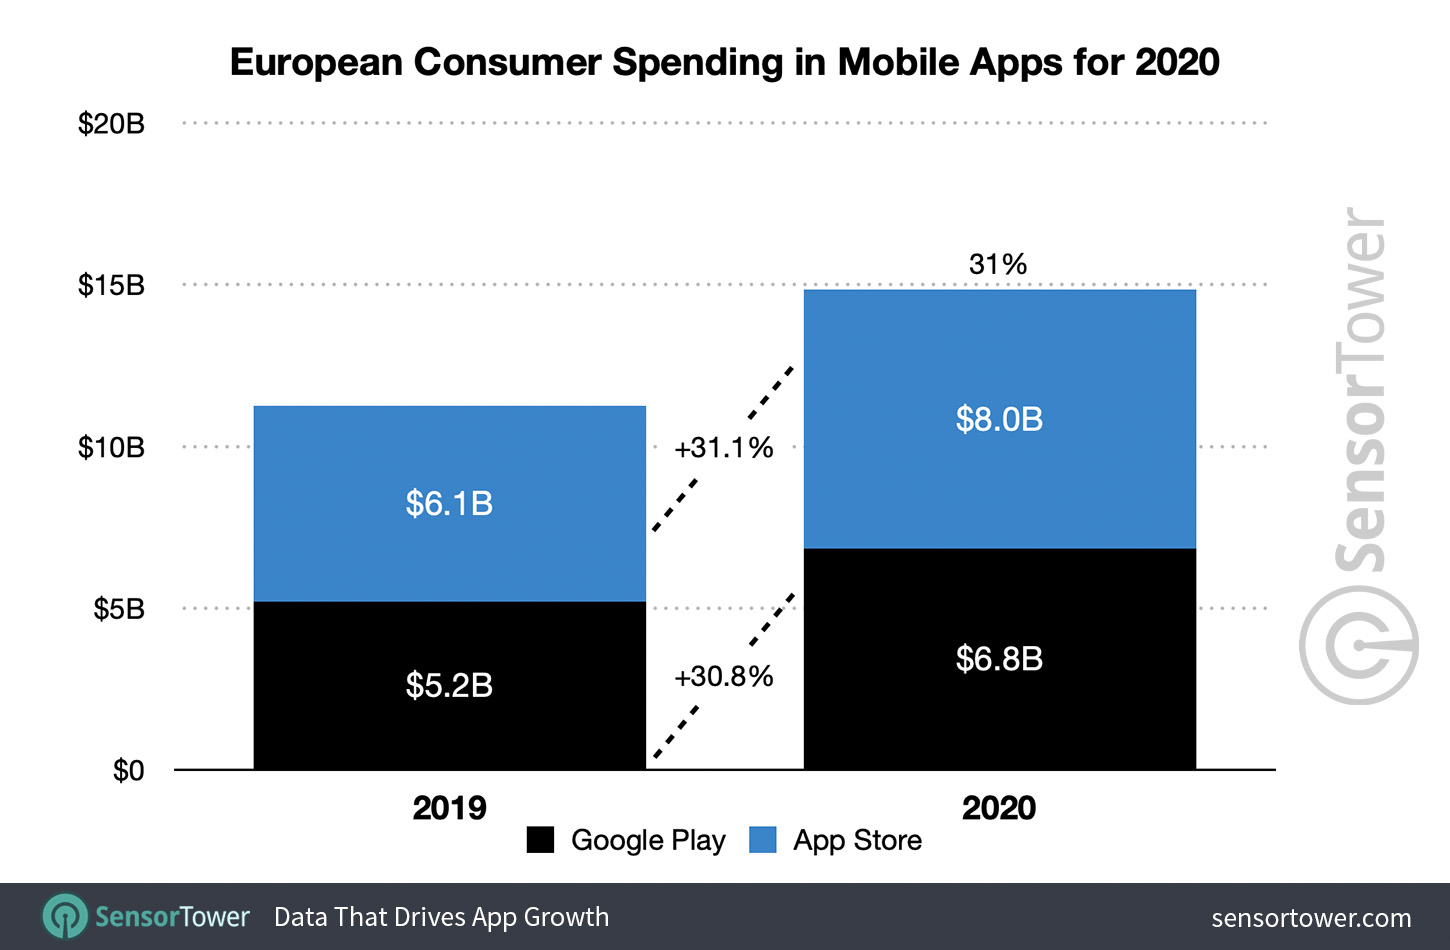 European Mobile App Consumer Spending Grew 31% in 2020 to Nearly $15 Billion